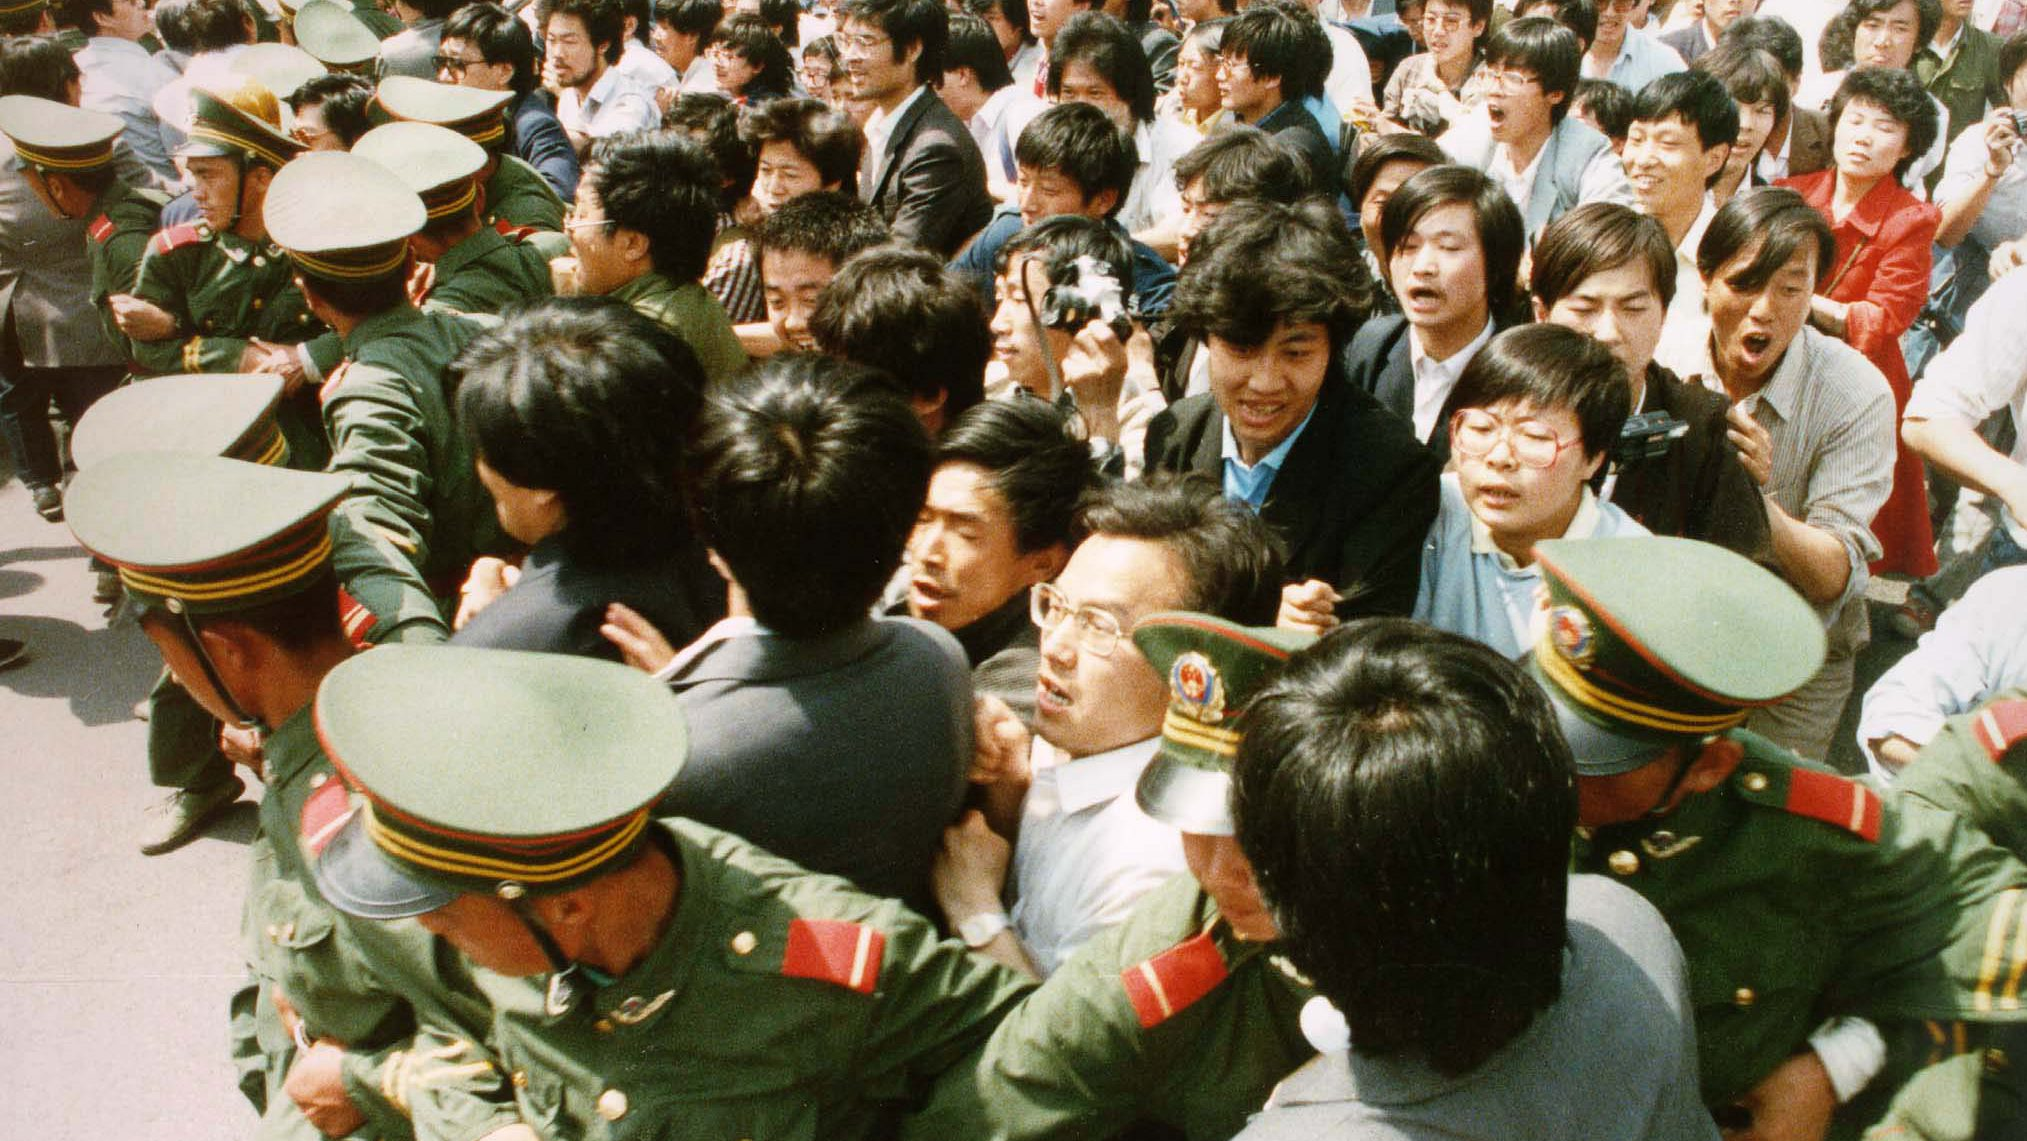 Crowds of jubilant students surge through a police cordon before pouring into Tiananmen Square on June 4, 1989 during a pro-democracy demonstration. This year marks the 10th anniversary of the bloody June 4 1989 army crackdown on the pro-democracy movement at Beijing's Tiananmen Square.